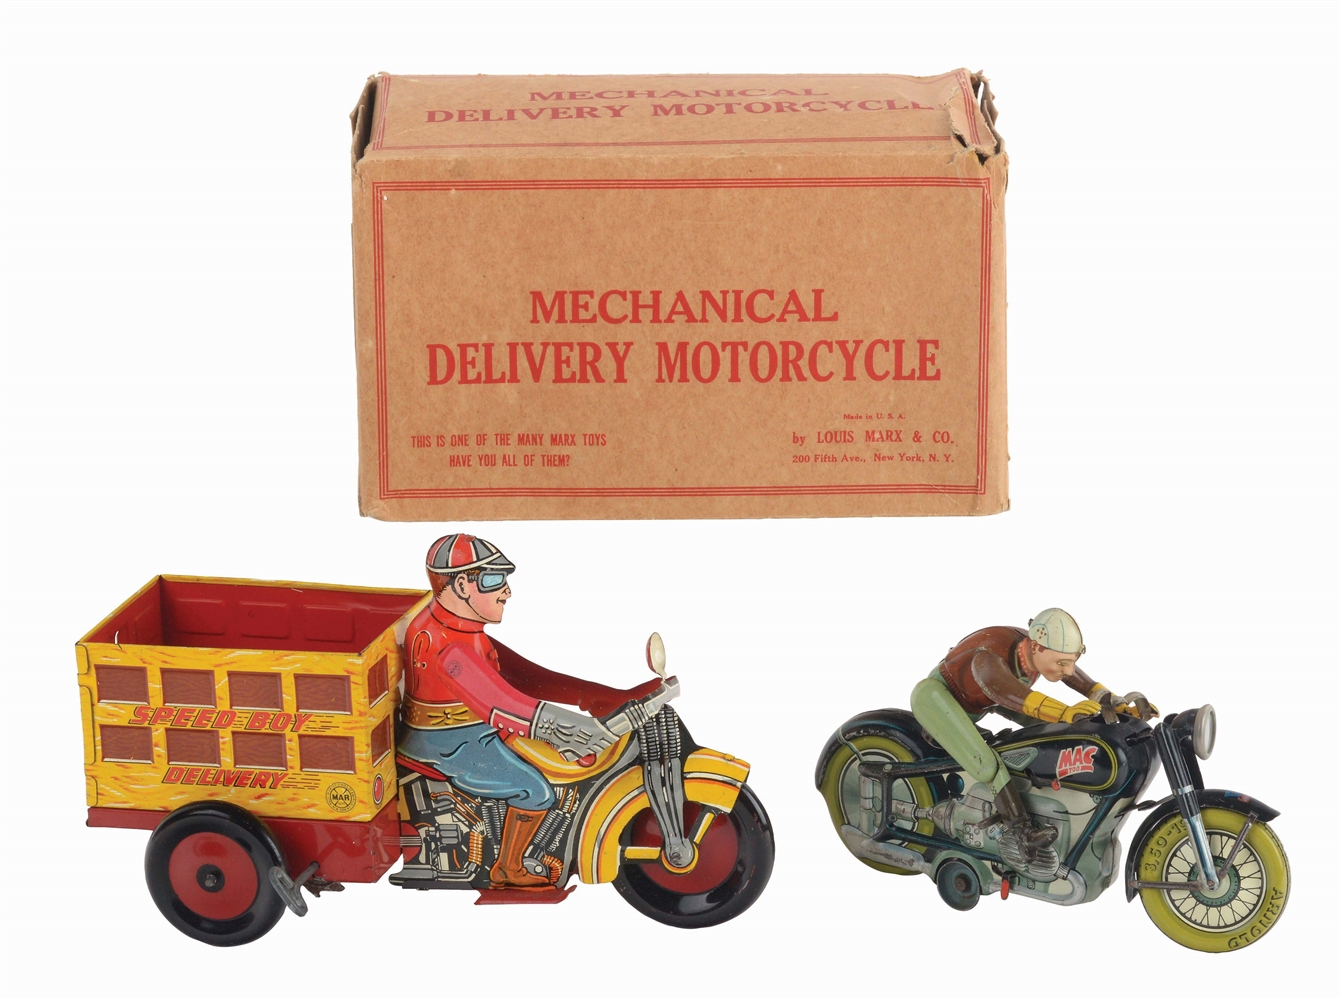 LOT OF 2: GERMAN AND AMERICAN MADE TIN-LITHO MOTORCYCLE WIND-UP TOYS.